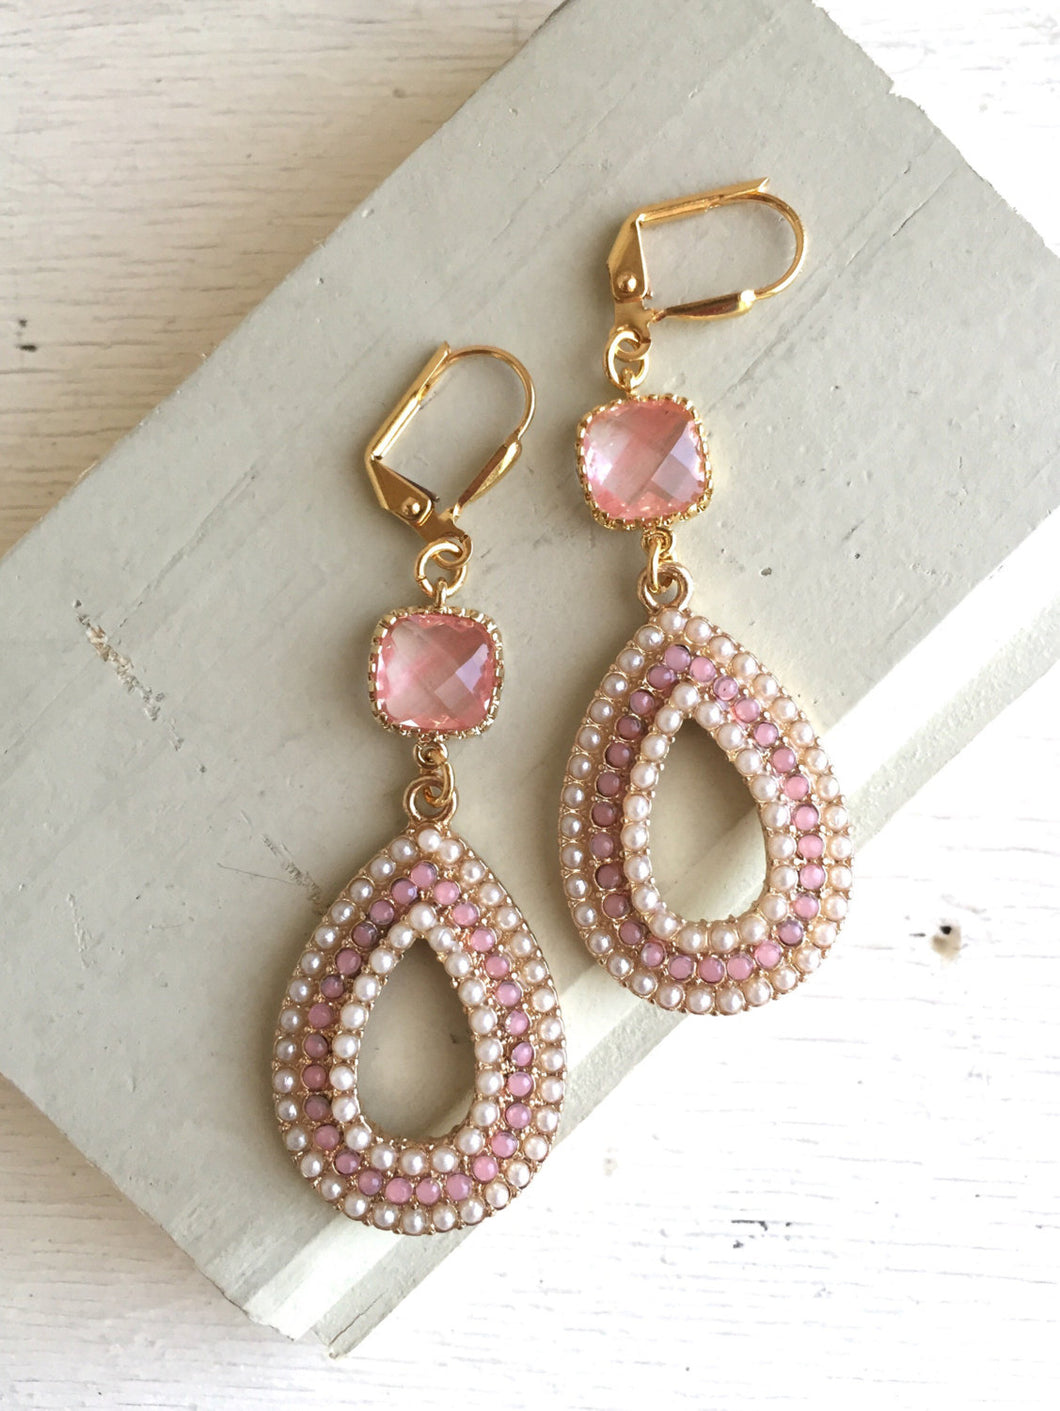 Pink and Pearl Chandelier Earrings in Gold. Summer Statement Earrings. Dangle Earrings. Wedding Jewelry. Beach Earrings. Gift.